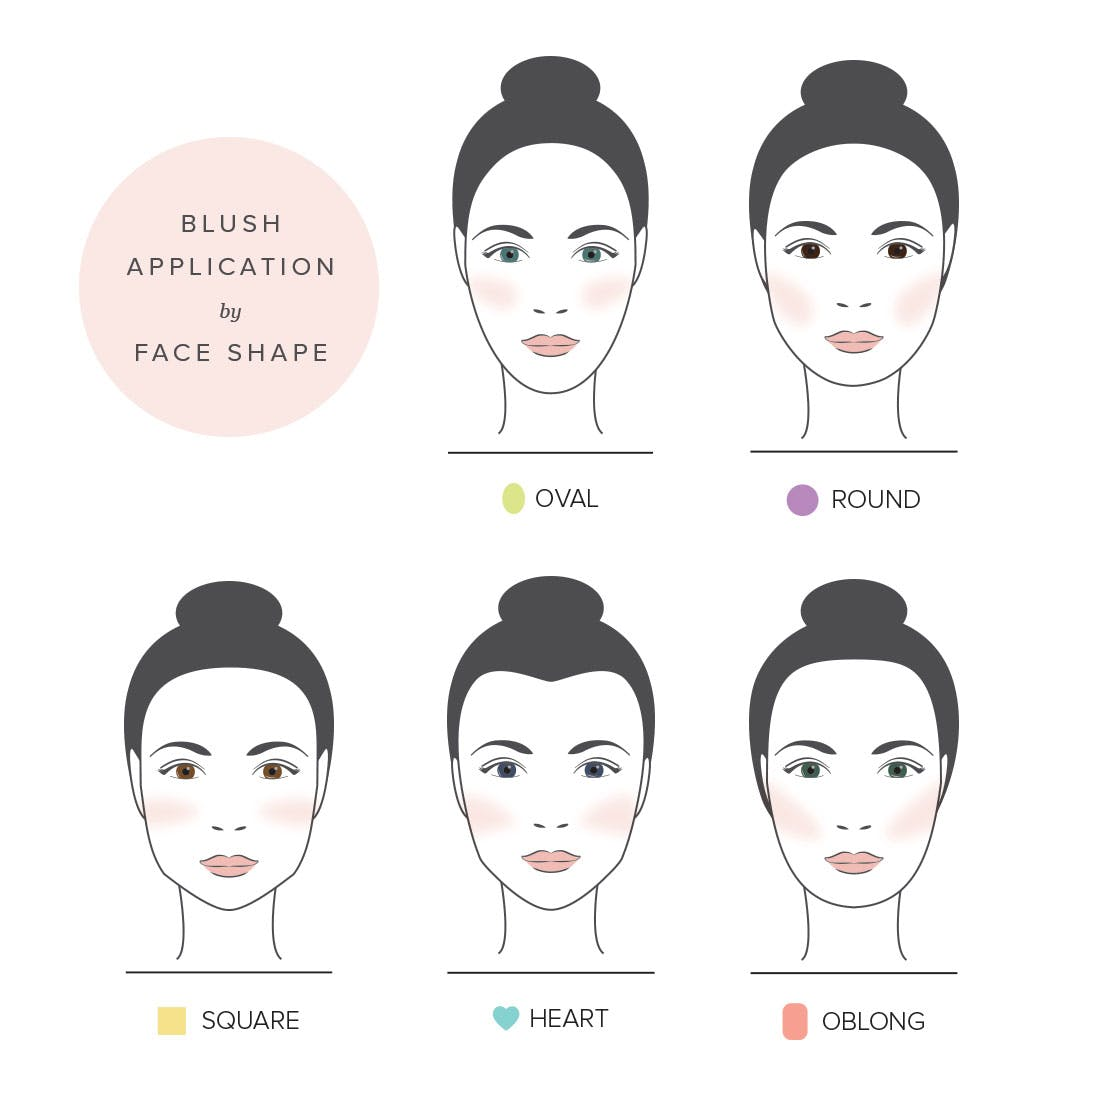 blush application diagram